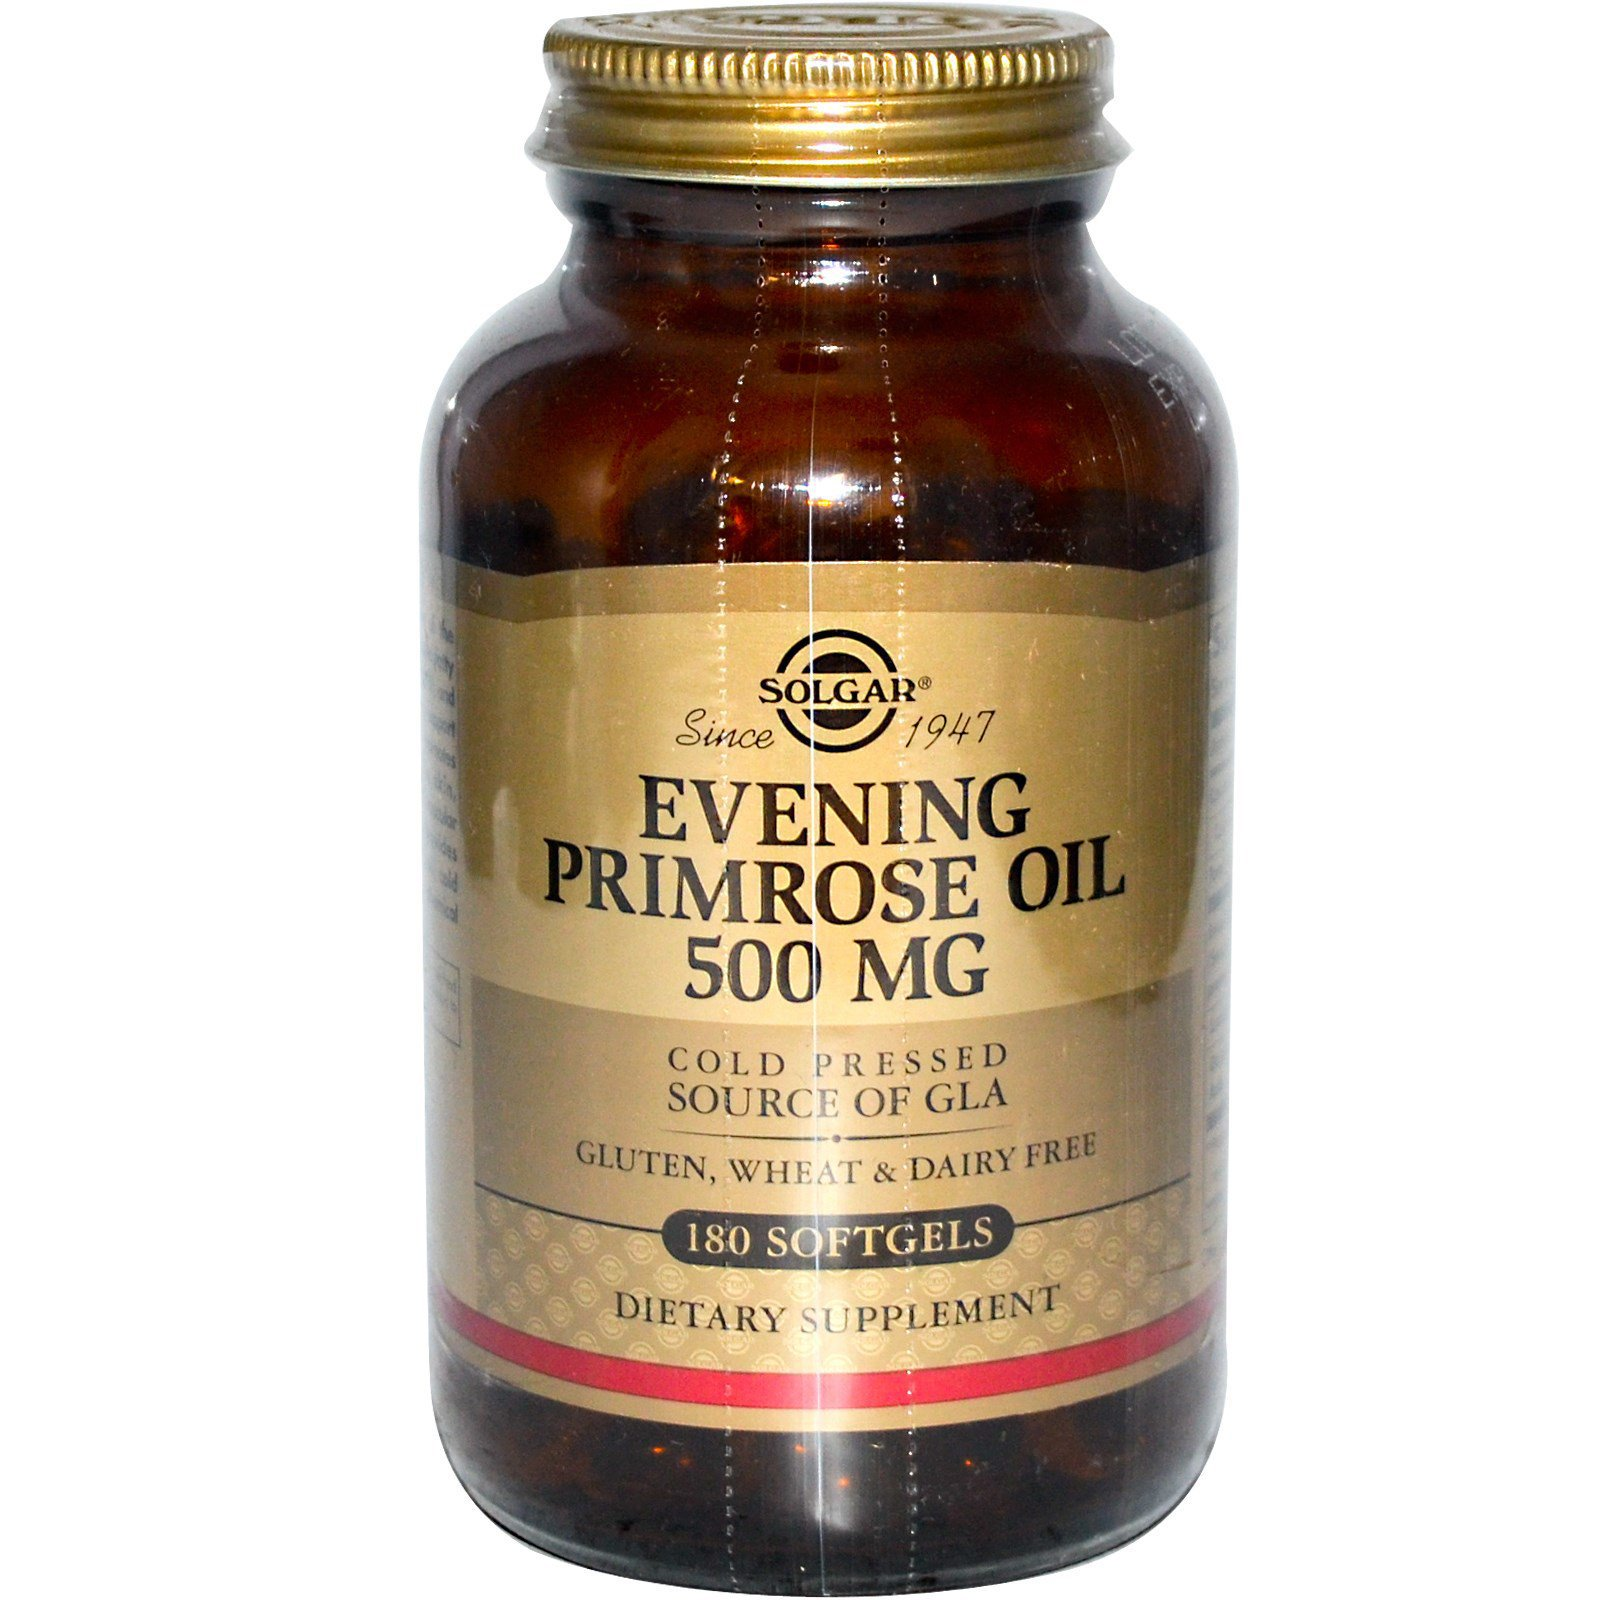 Solgar Evening Primrose Oil softgels – 500mg 180softgels